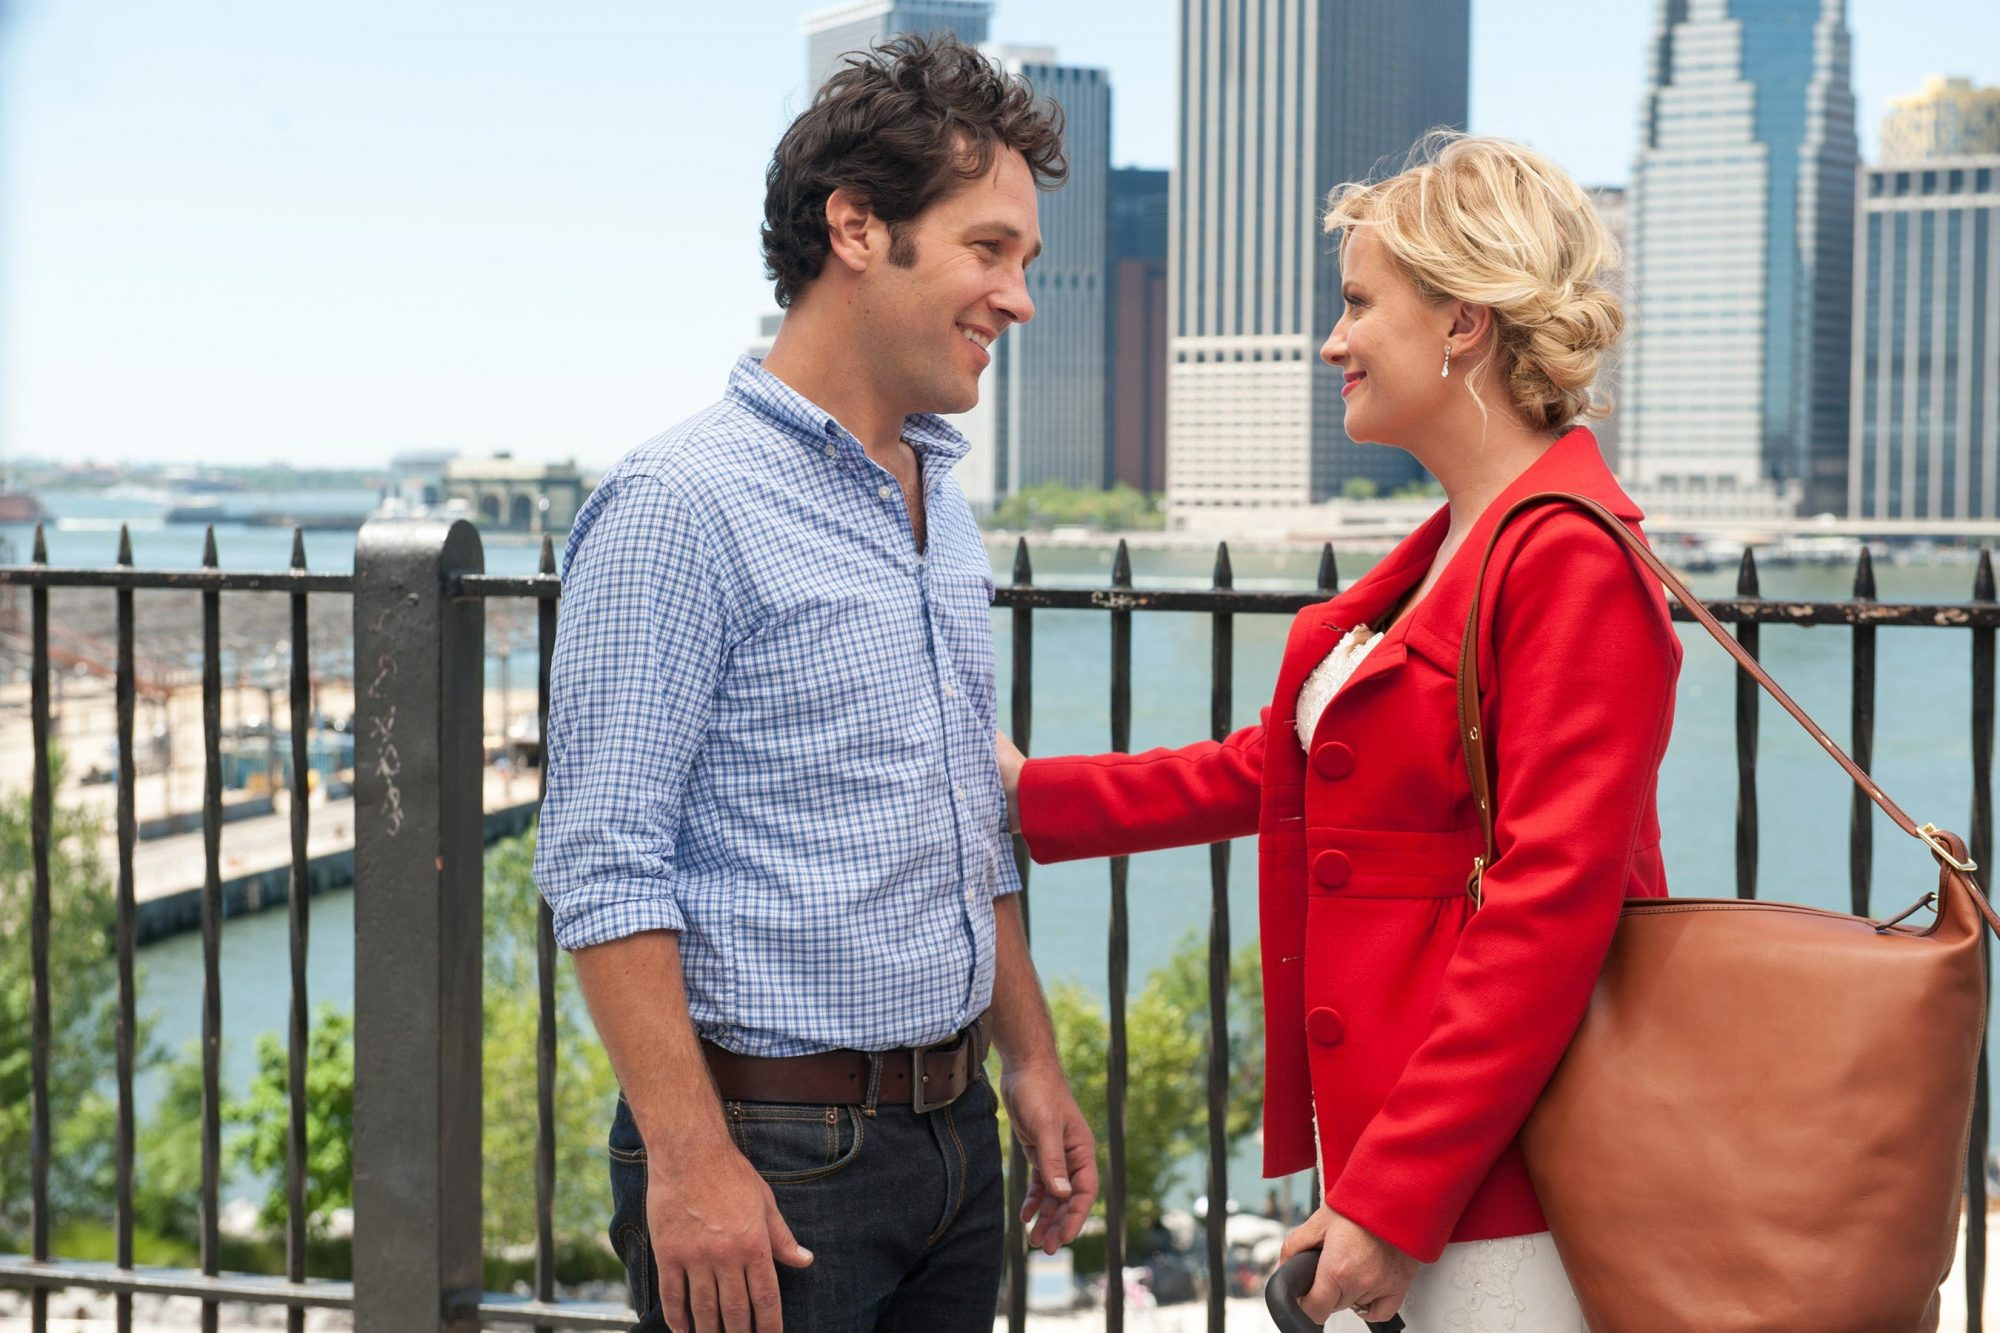 They Came Together (2014)Paul Rudd and Amy Poehler